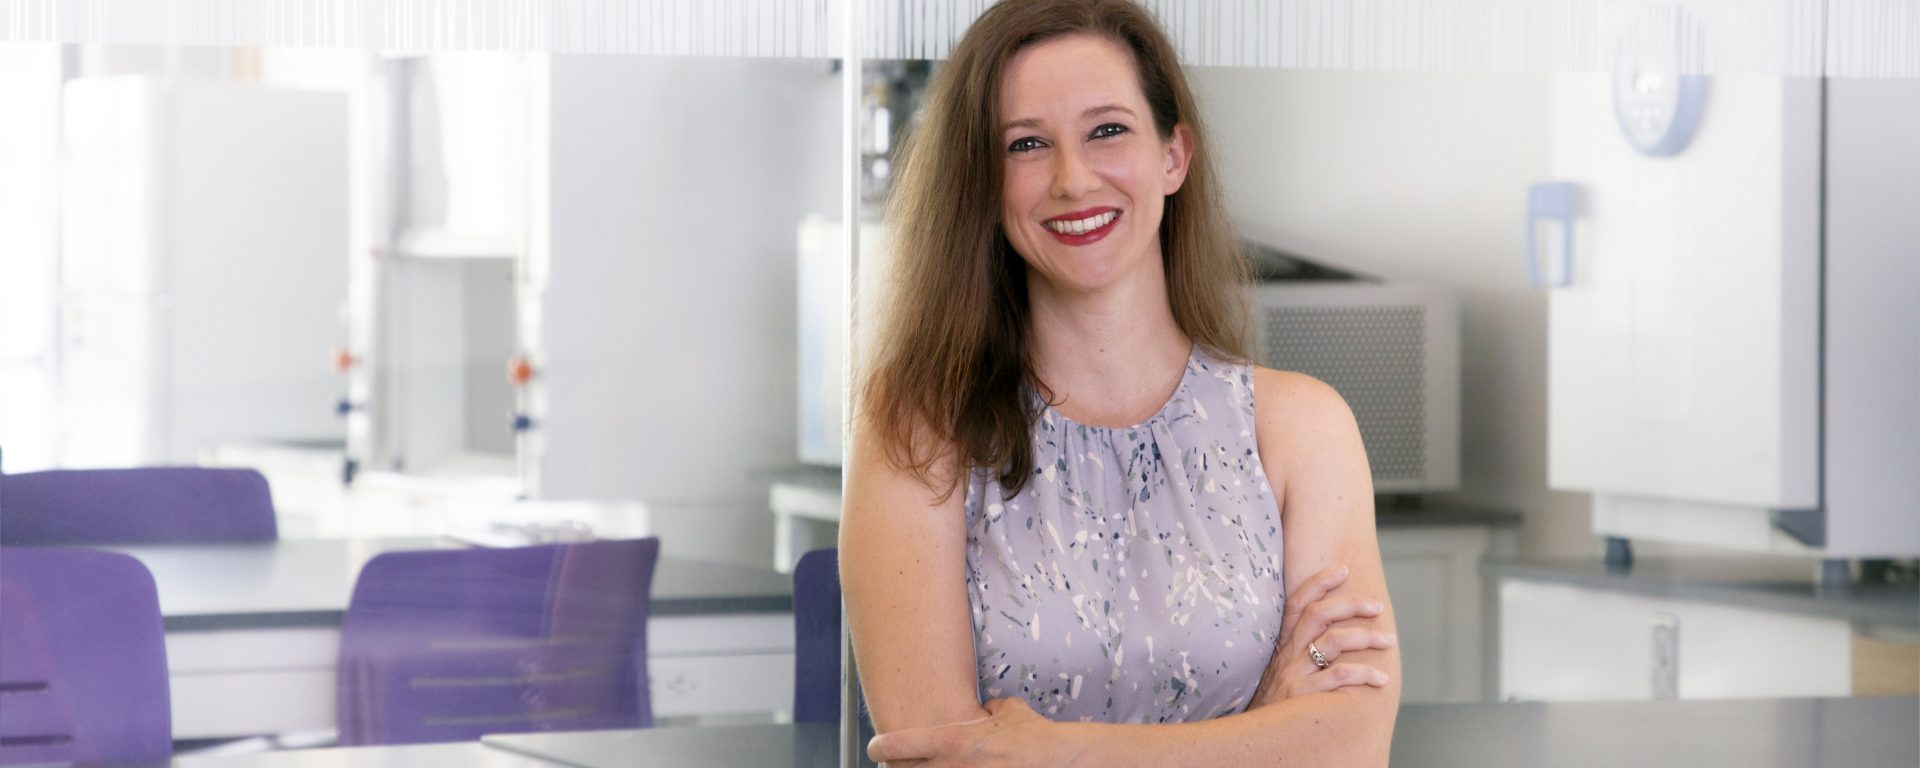 UMBC's Tara LeGates is first runner-up for prestigious international neurobiology prize